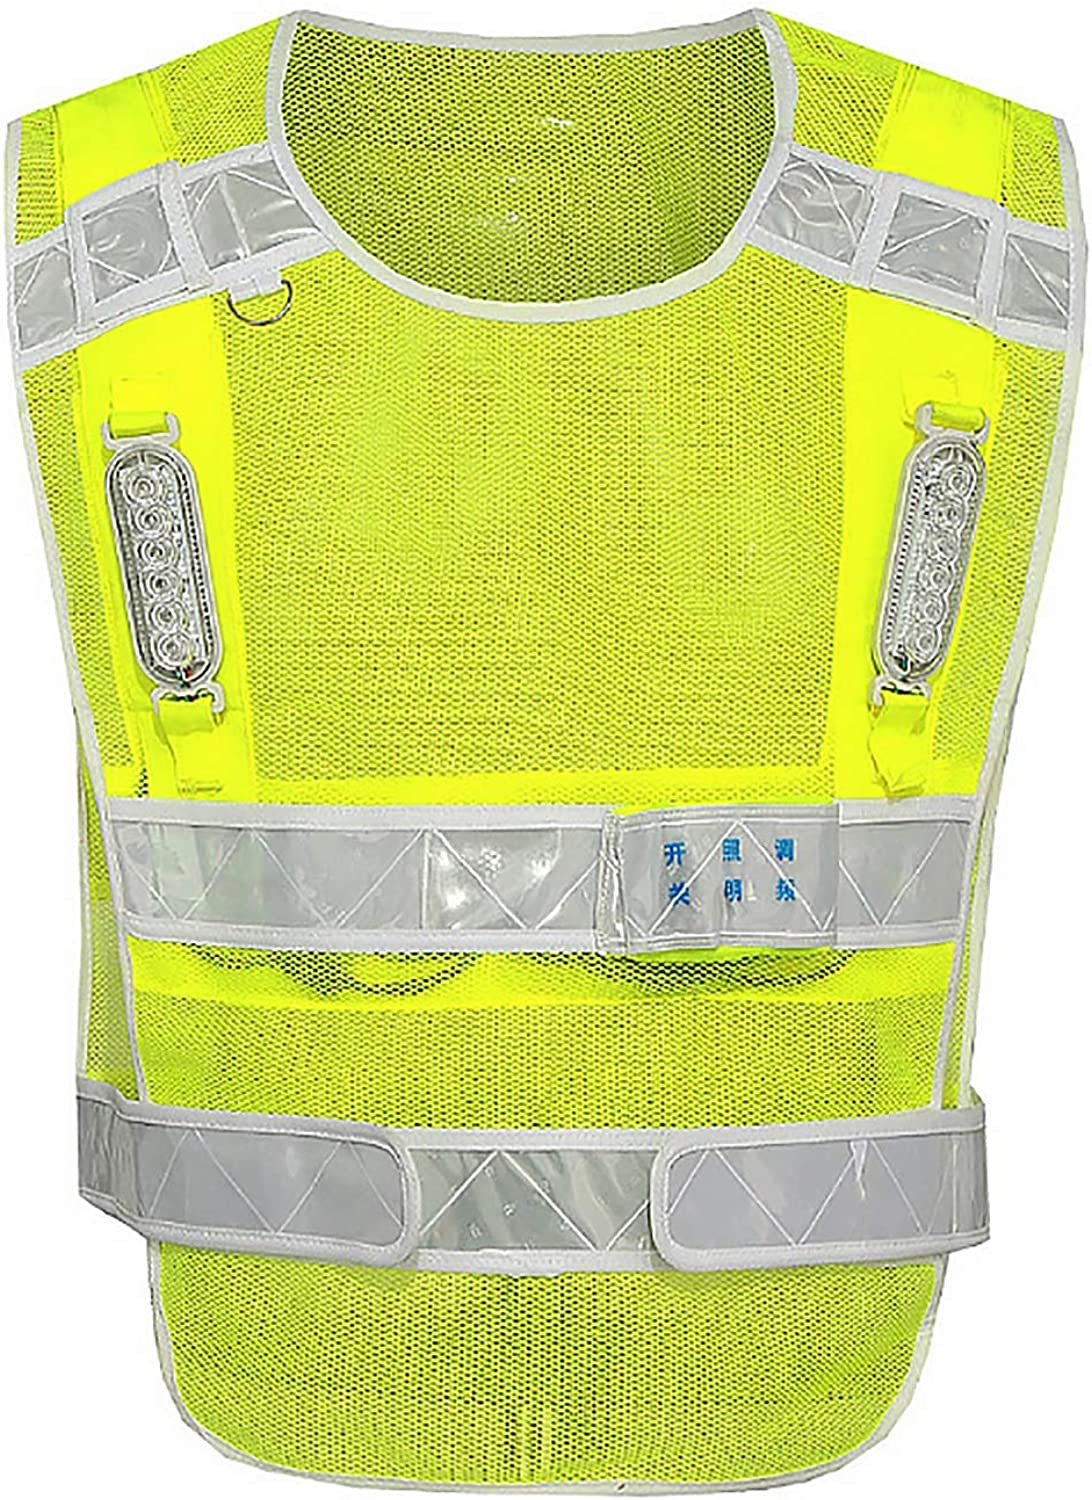 CTARCROW Reflective Vest Safety Vest Fluorescent Belt Joking Bicycle Motorcycle Traffic Cover Night Predection induces Fluorescent Reflective Safety Vest Universal Construction Uniform for Men and wo